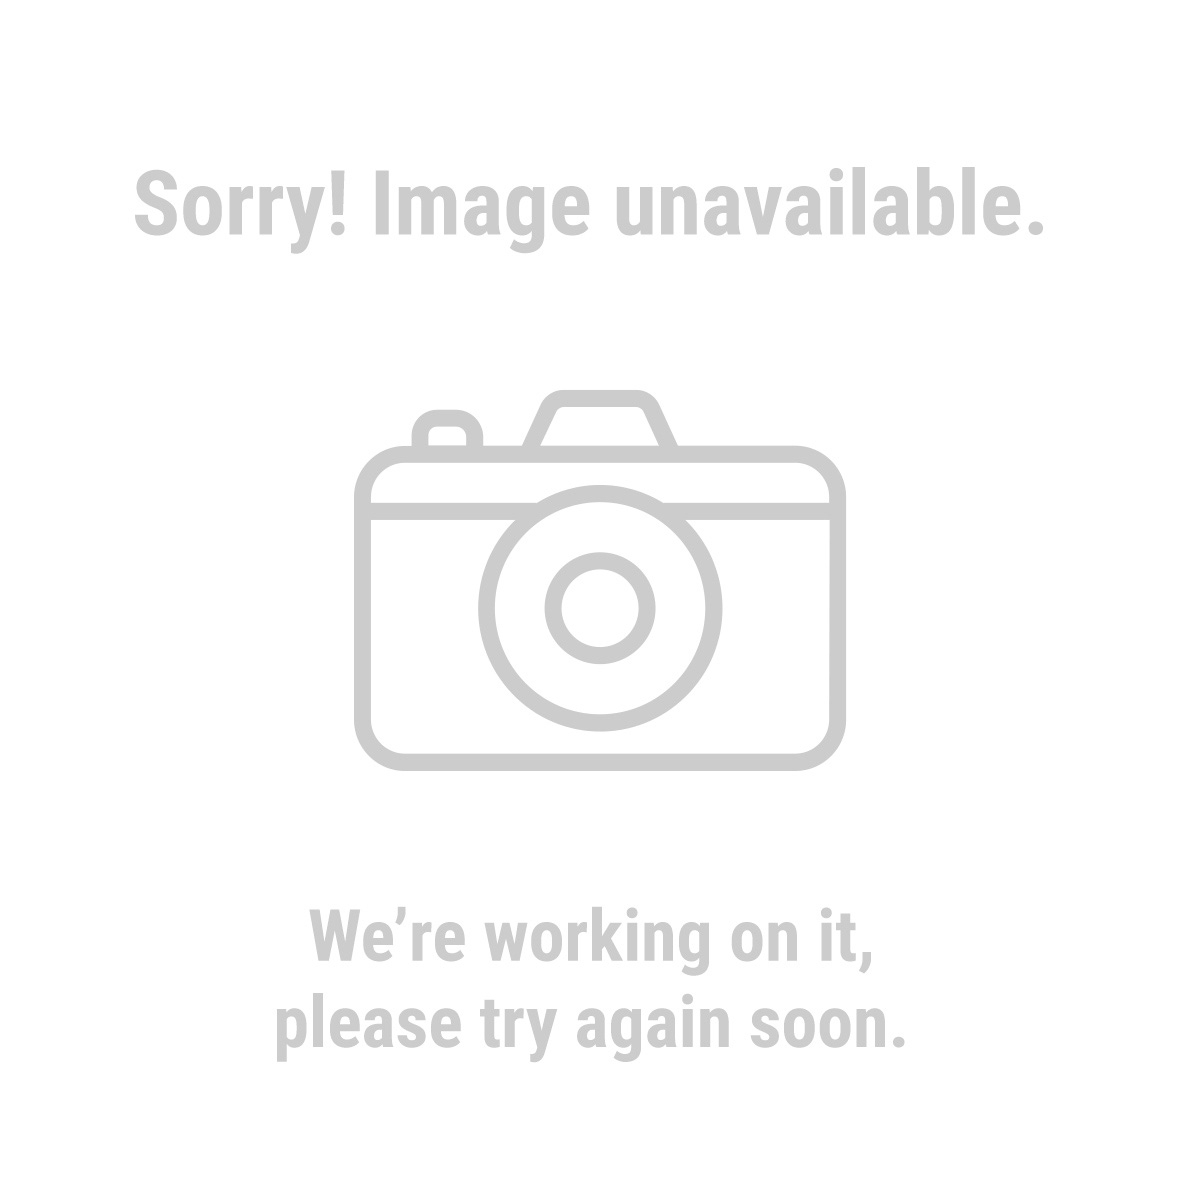 "Pittsburgh 39721 1/4"" Socket Rail"